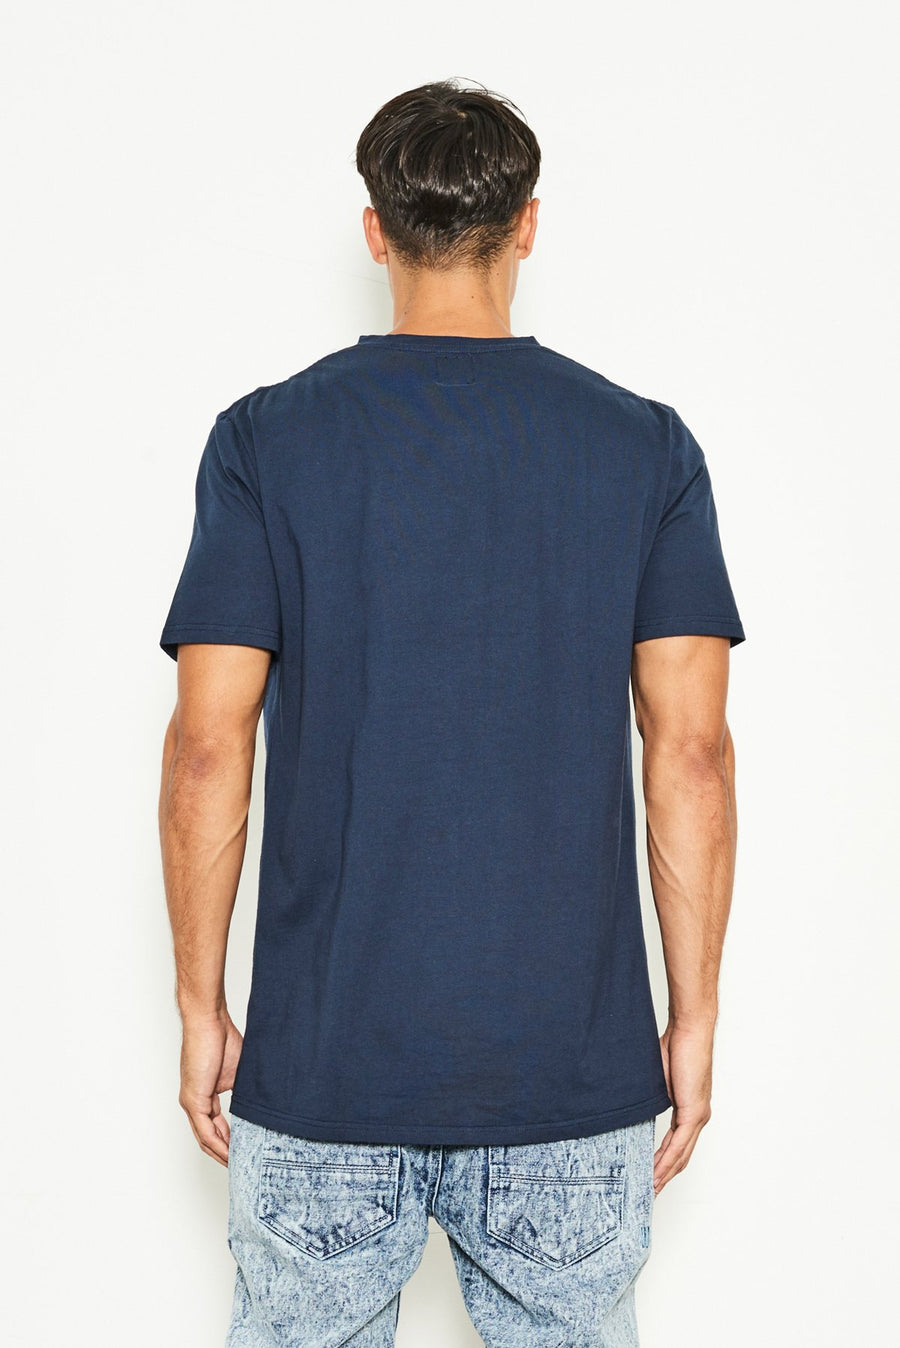 The Bayshore Tee